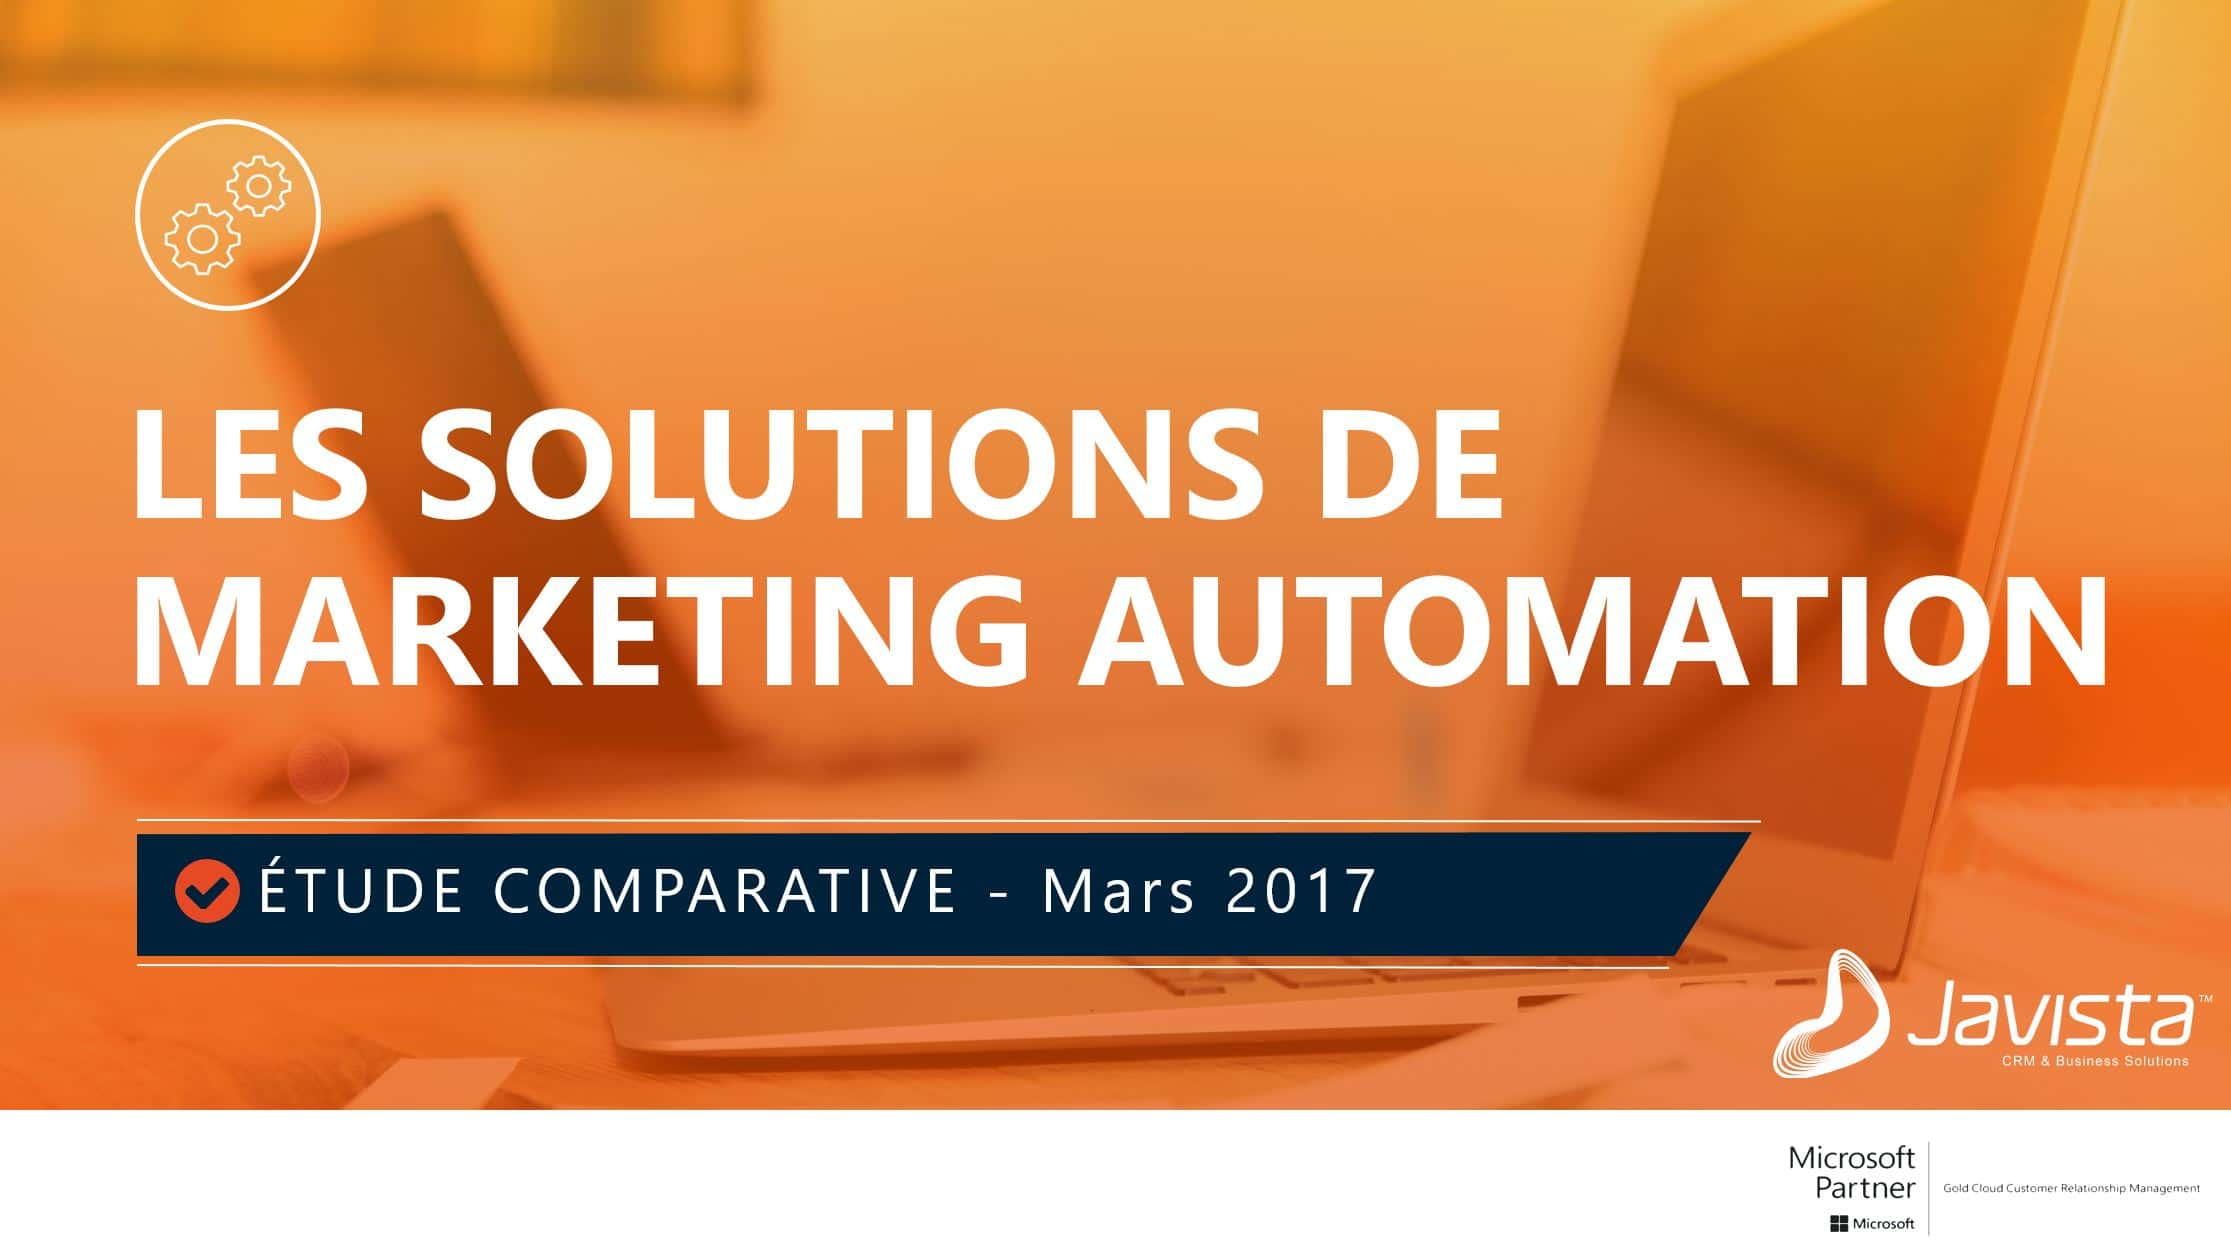 Solutions de marketing automation